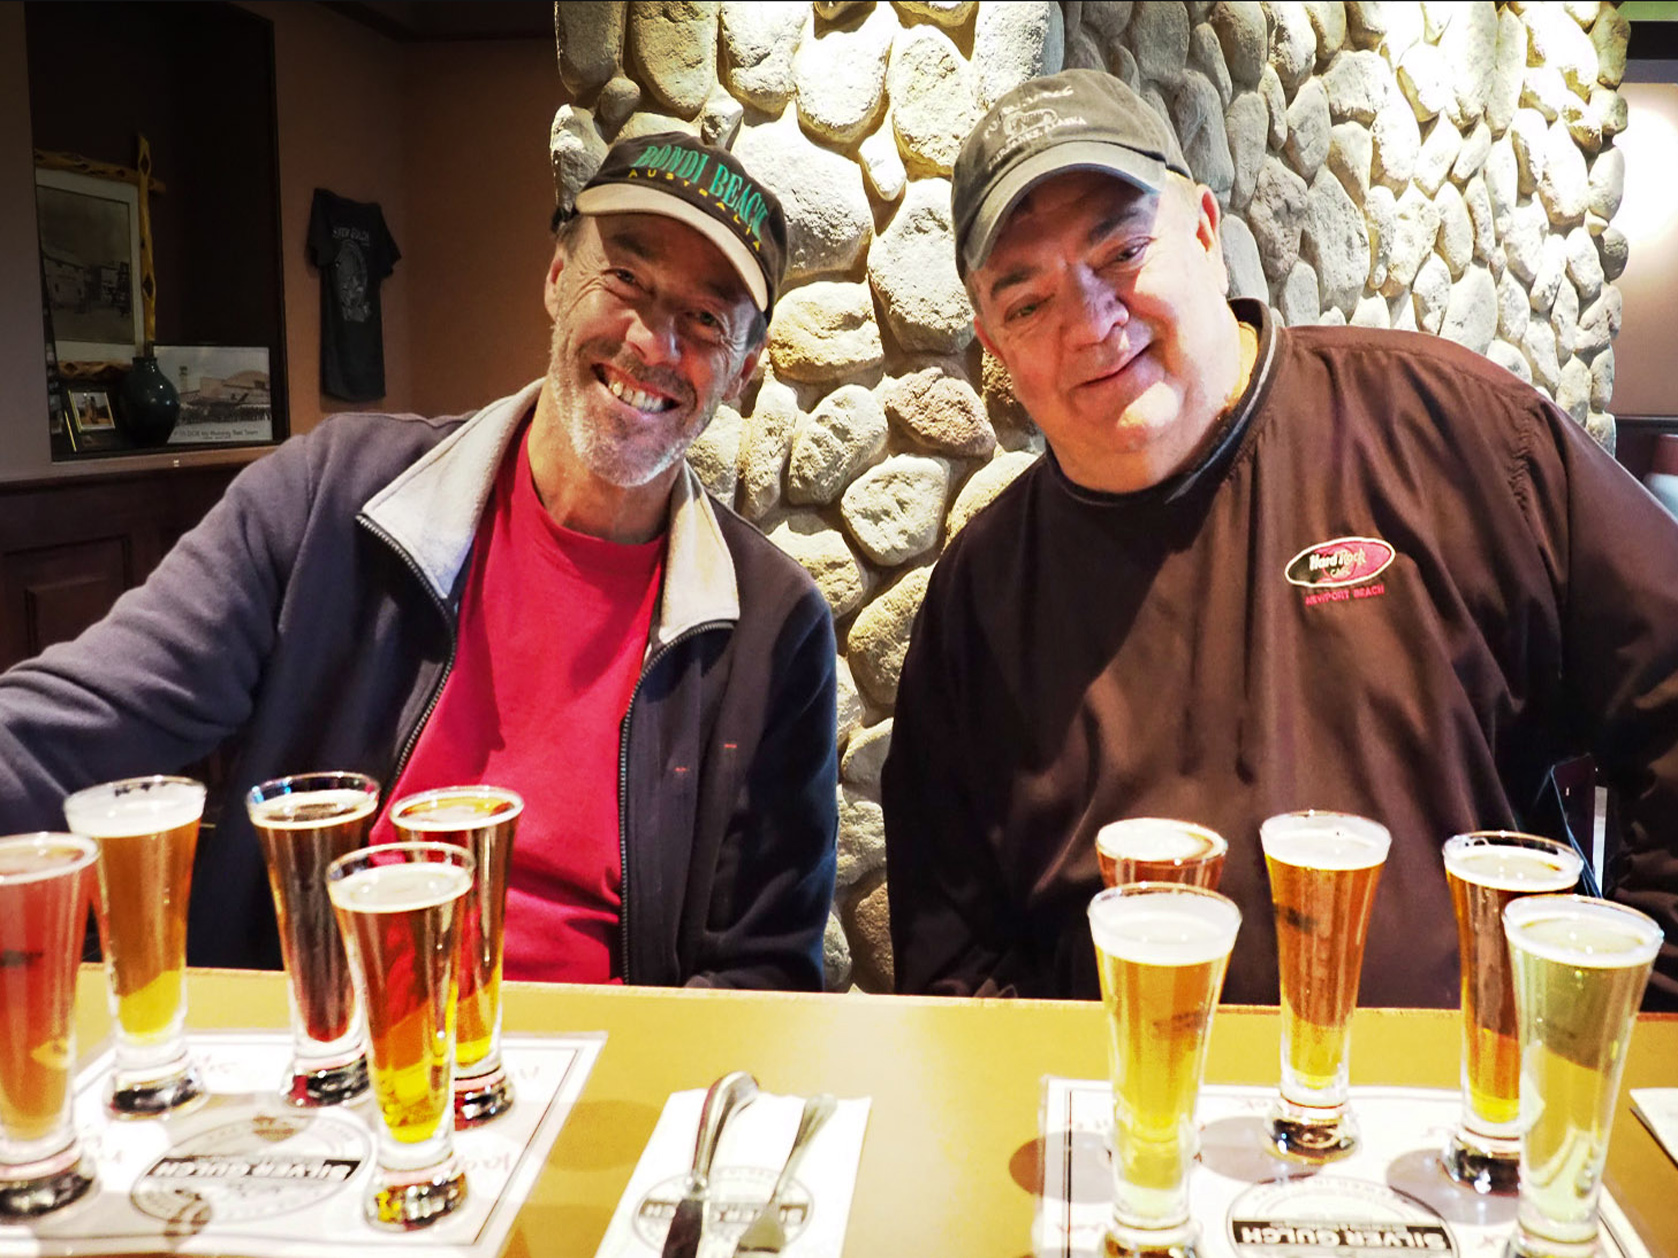 Biertest in der Silver Gulch Brauerei in Fairbanks